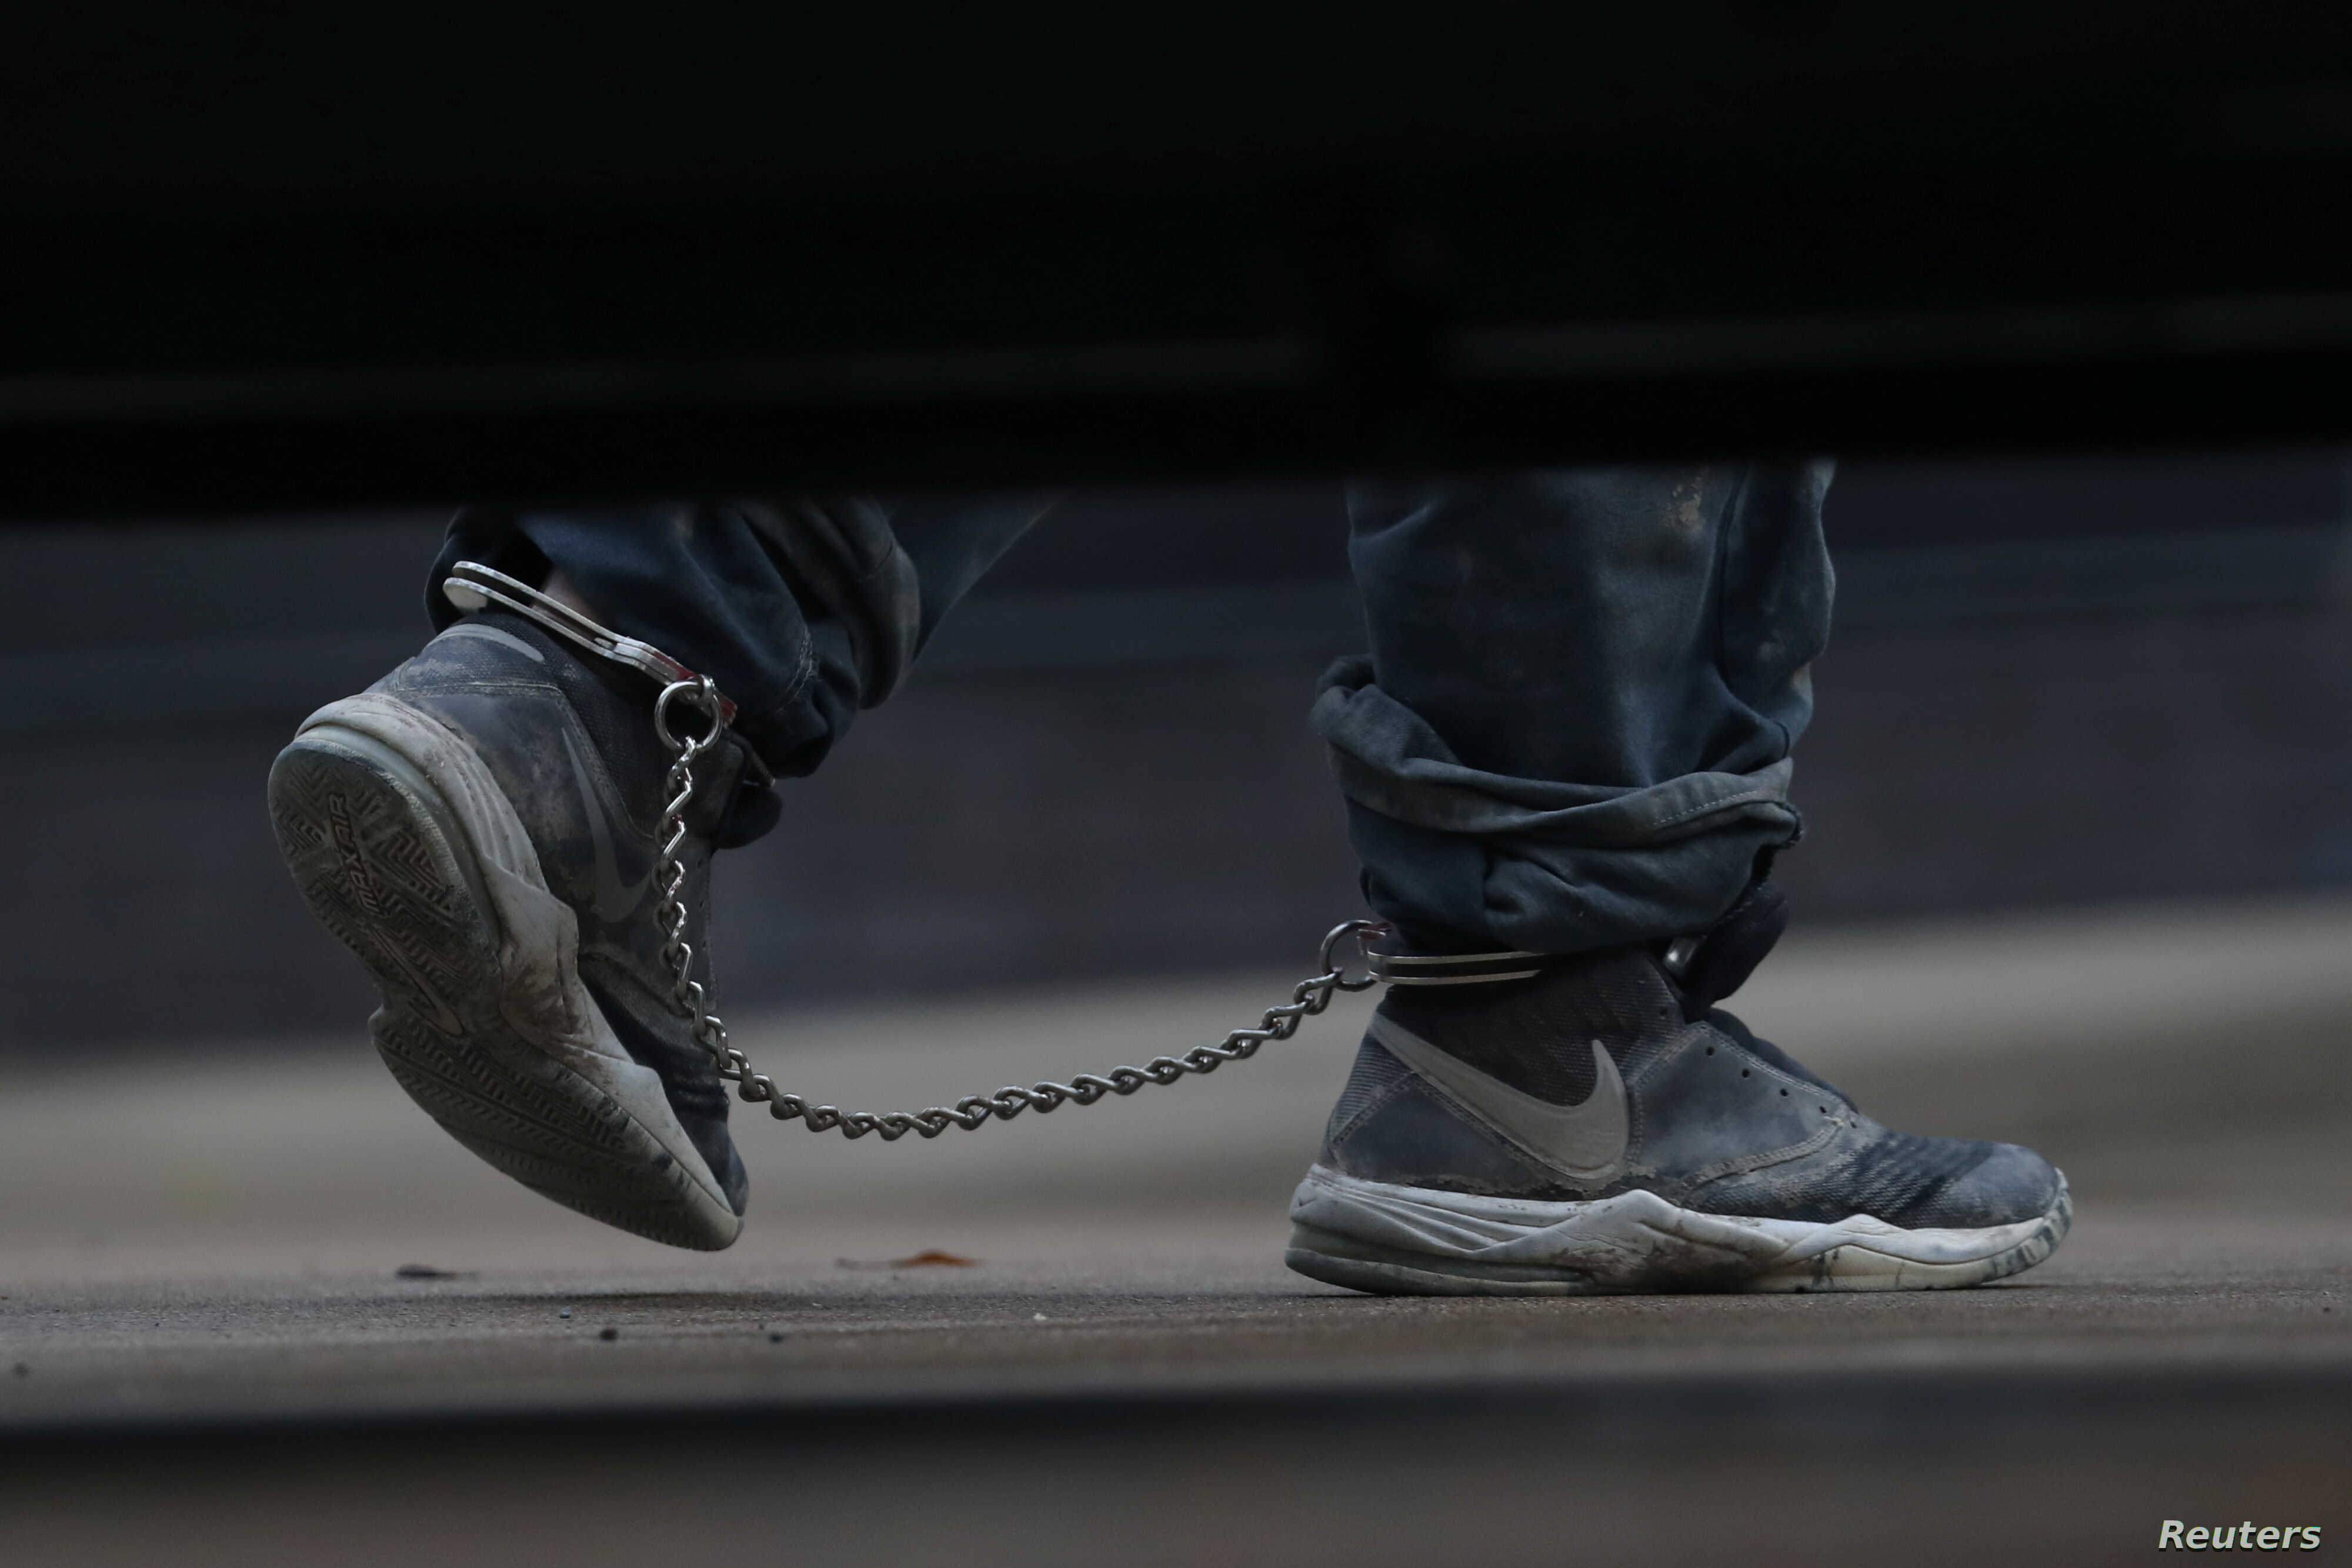 Undocumented immigrants in shackles arrive at a U.S. federal court for hearings in McAllen, Texas, U.S., June 22, 2018.